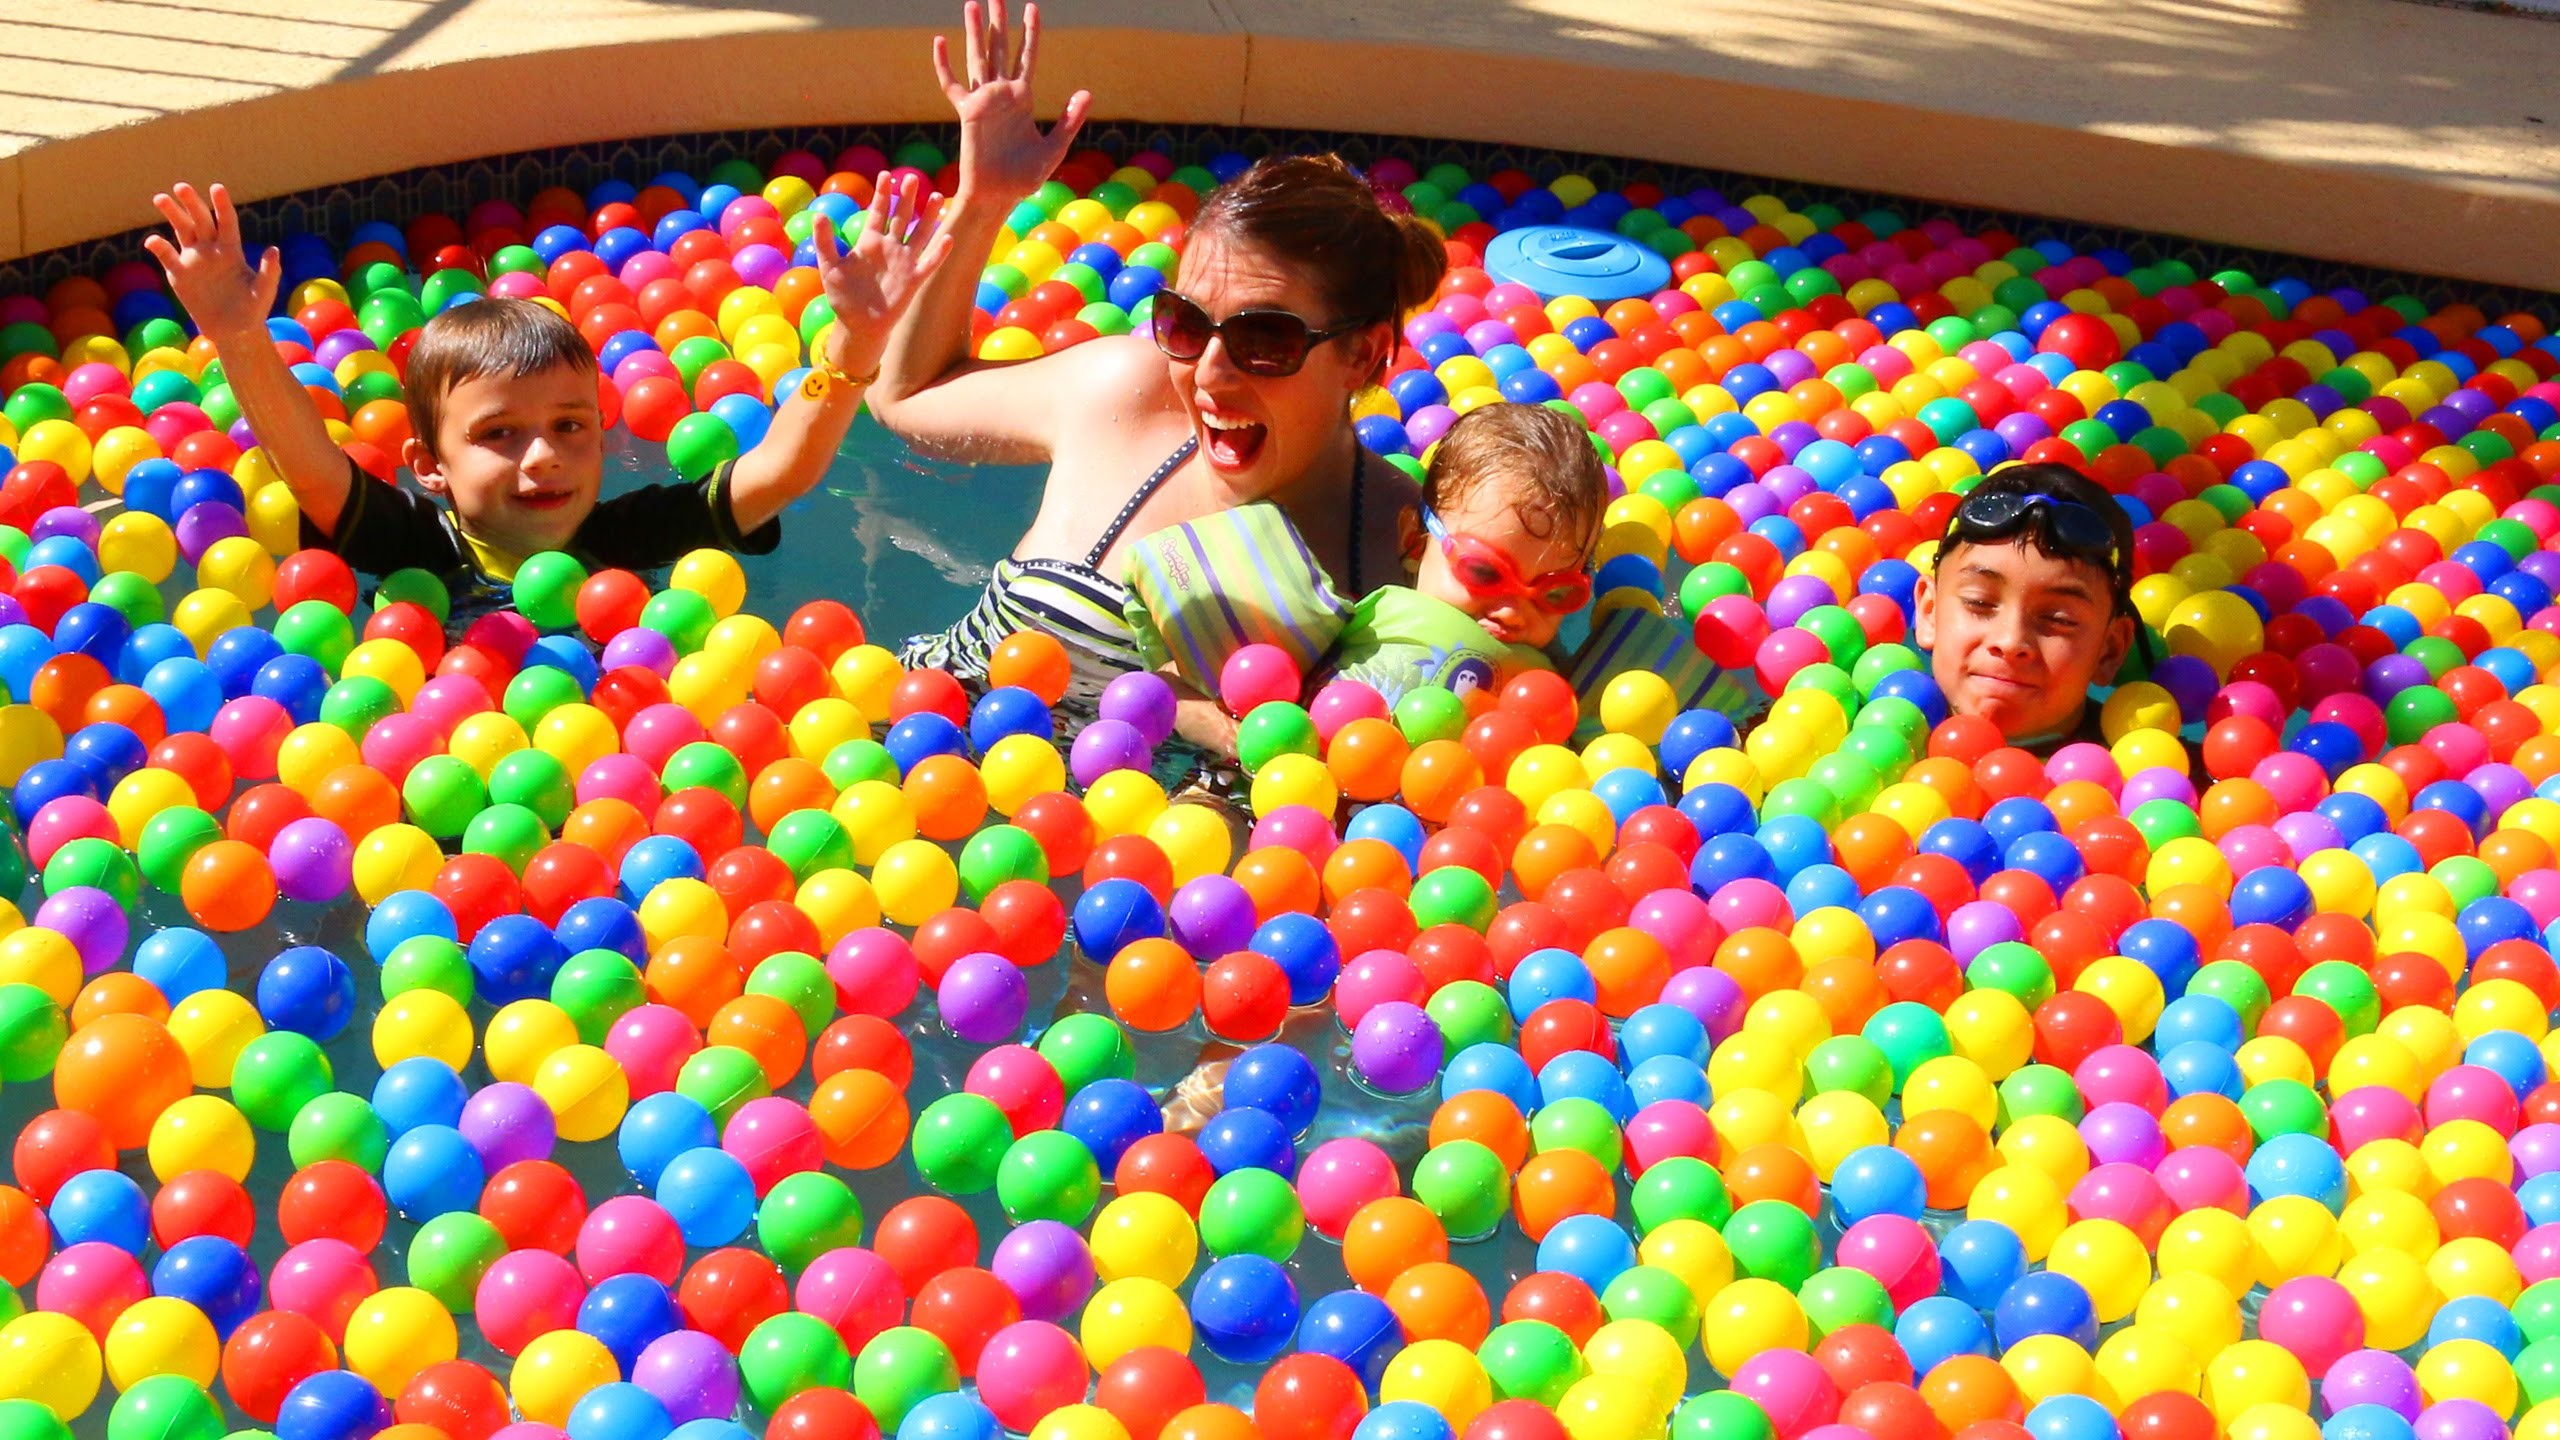 GIANT BALL PIT Swimming Pool Challenge Funny Jumps, Kids Games, Ballpit  Fight by DisneyCarToys – YouTube